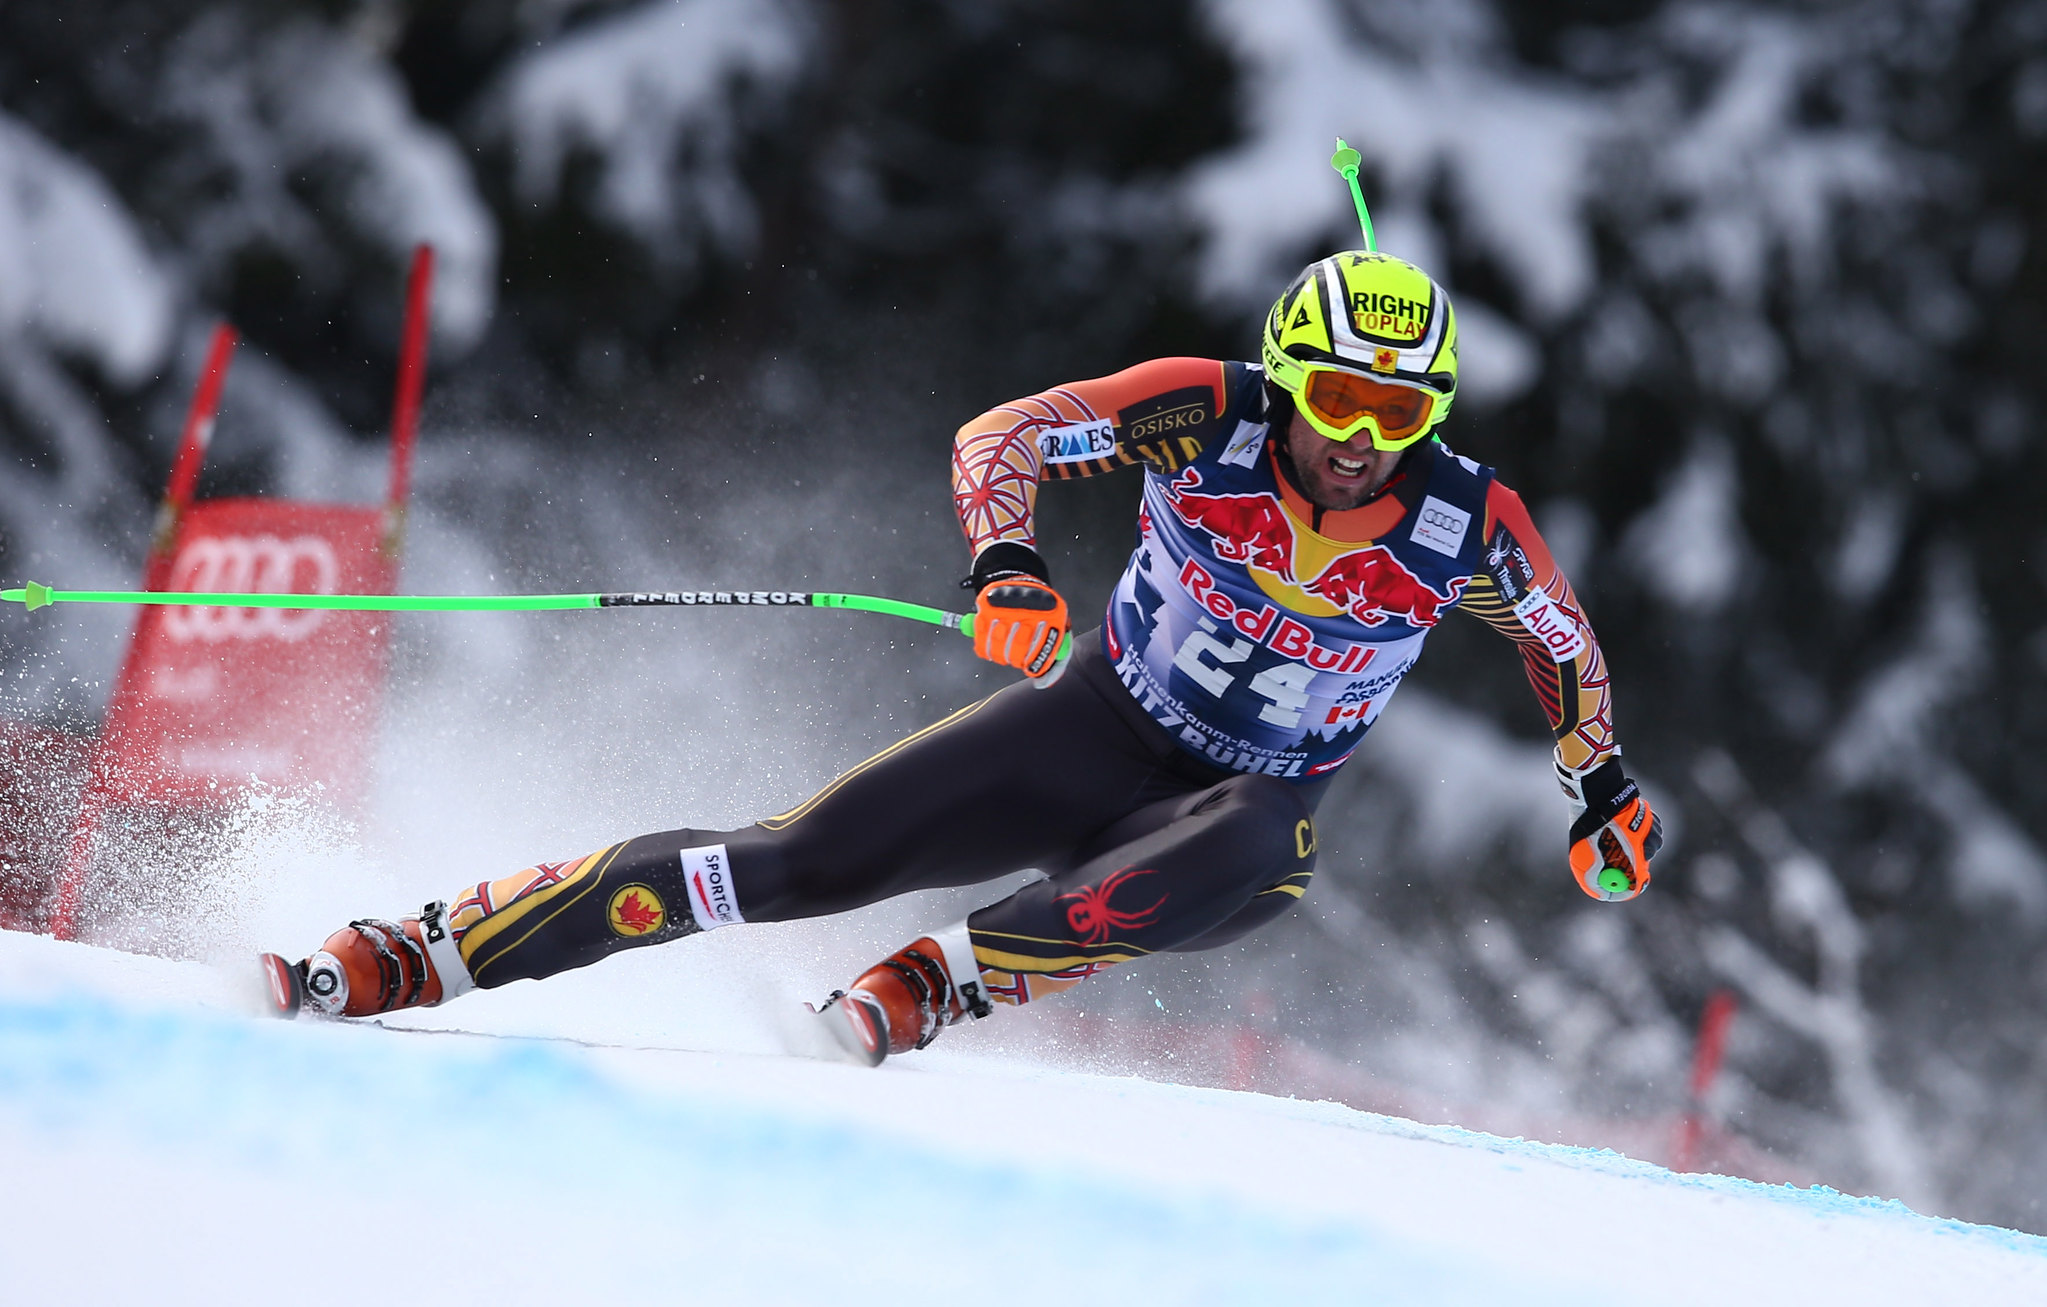 Manny speeds his way down the downhill track in Kitzbuehel, AUT